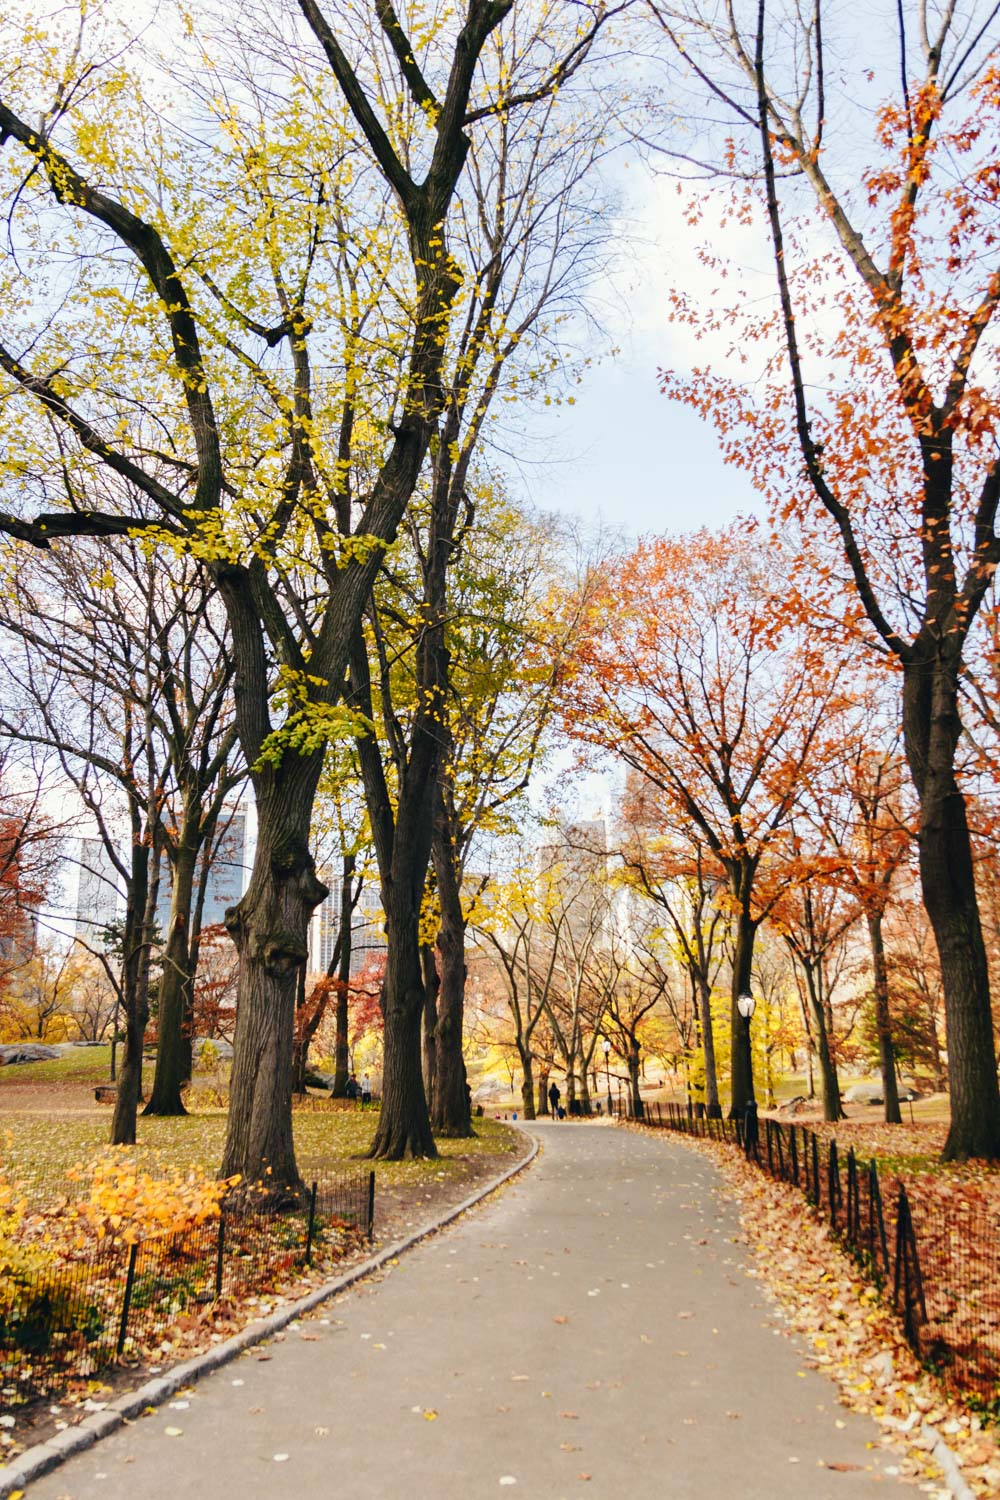 Trying to hold on to the last colors of fall before the snow gets here. We took a nice long walk through Central Park for our last day here.